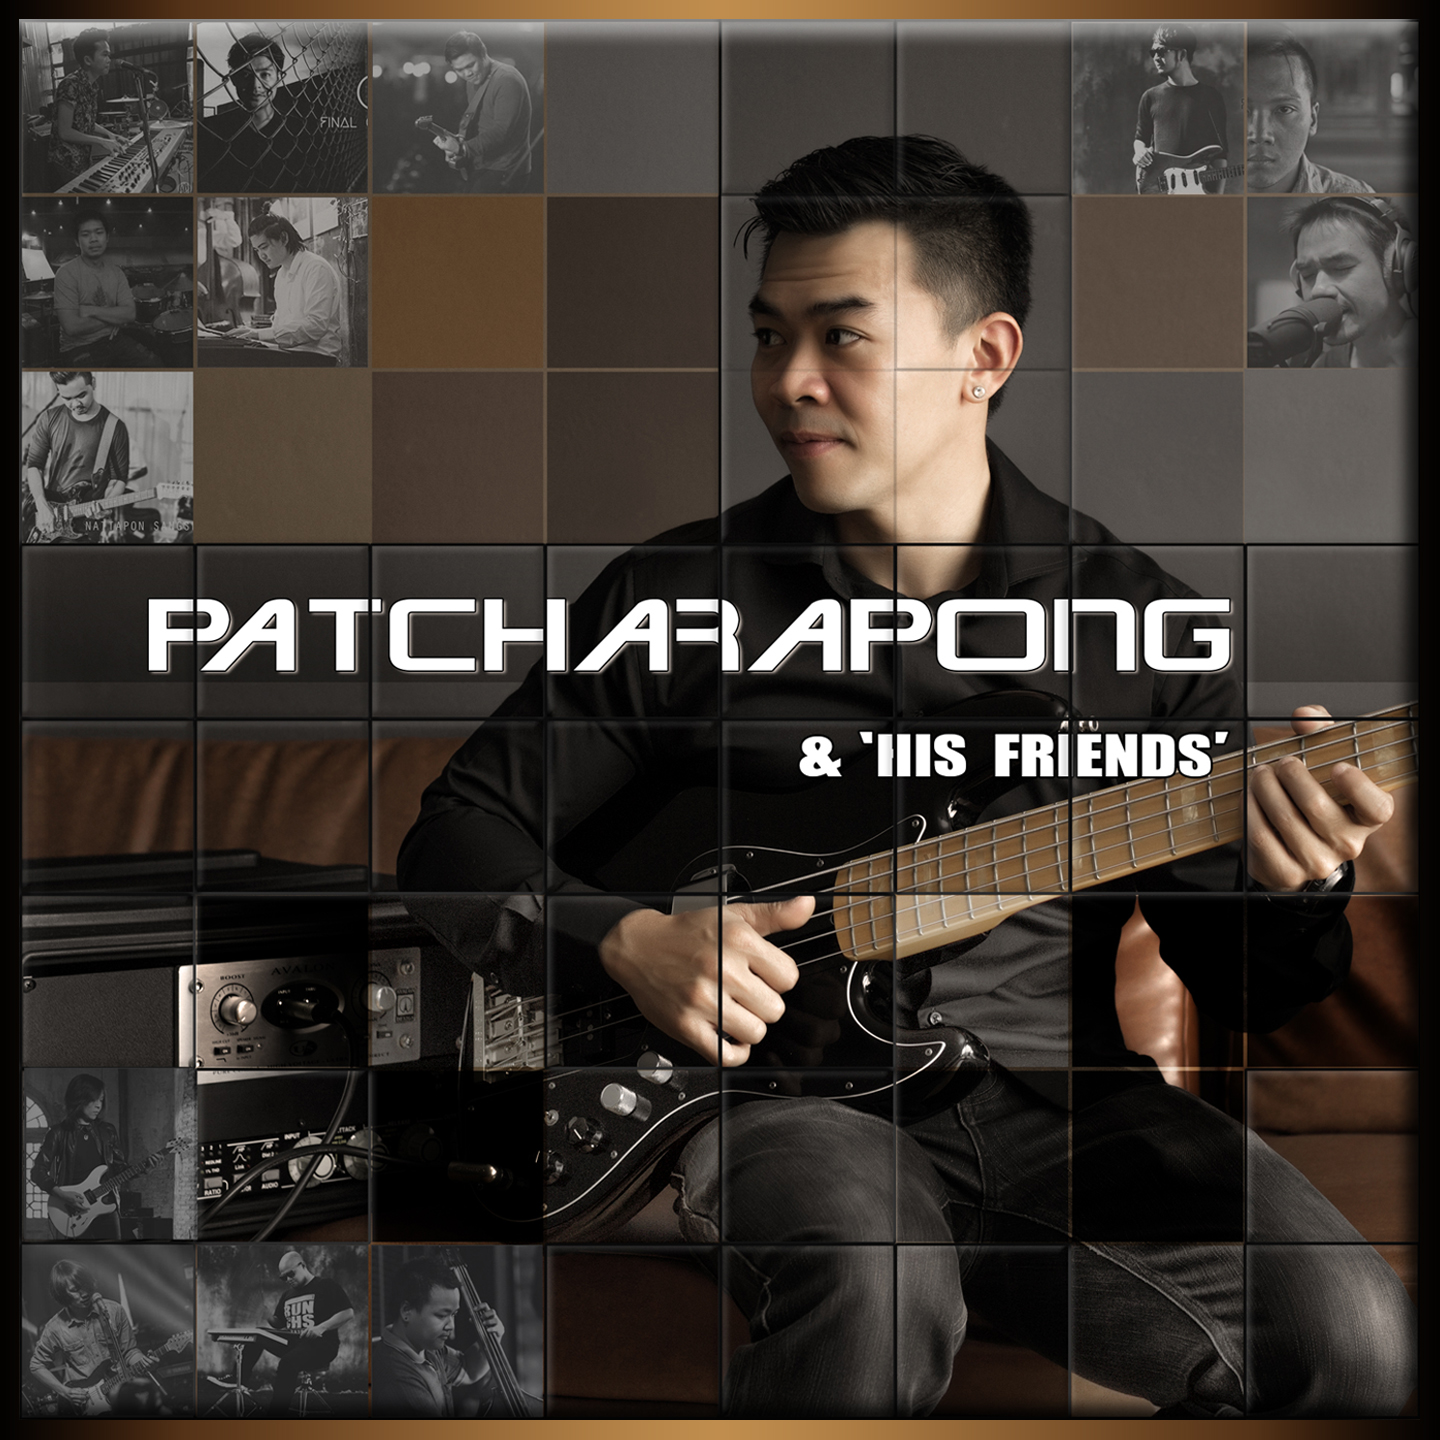 PATCHAPONG & HIS FRIENDS